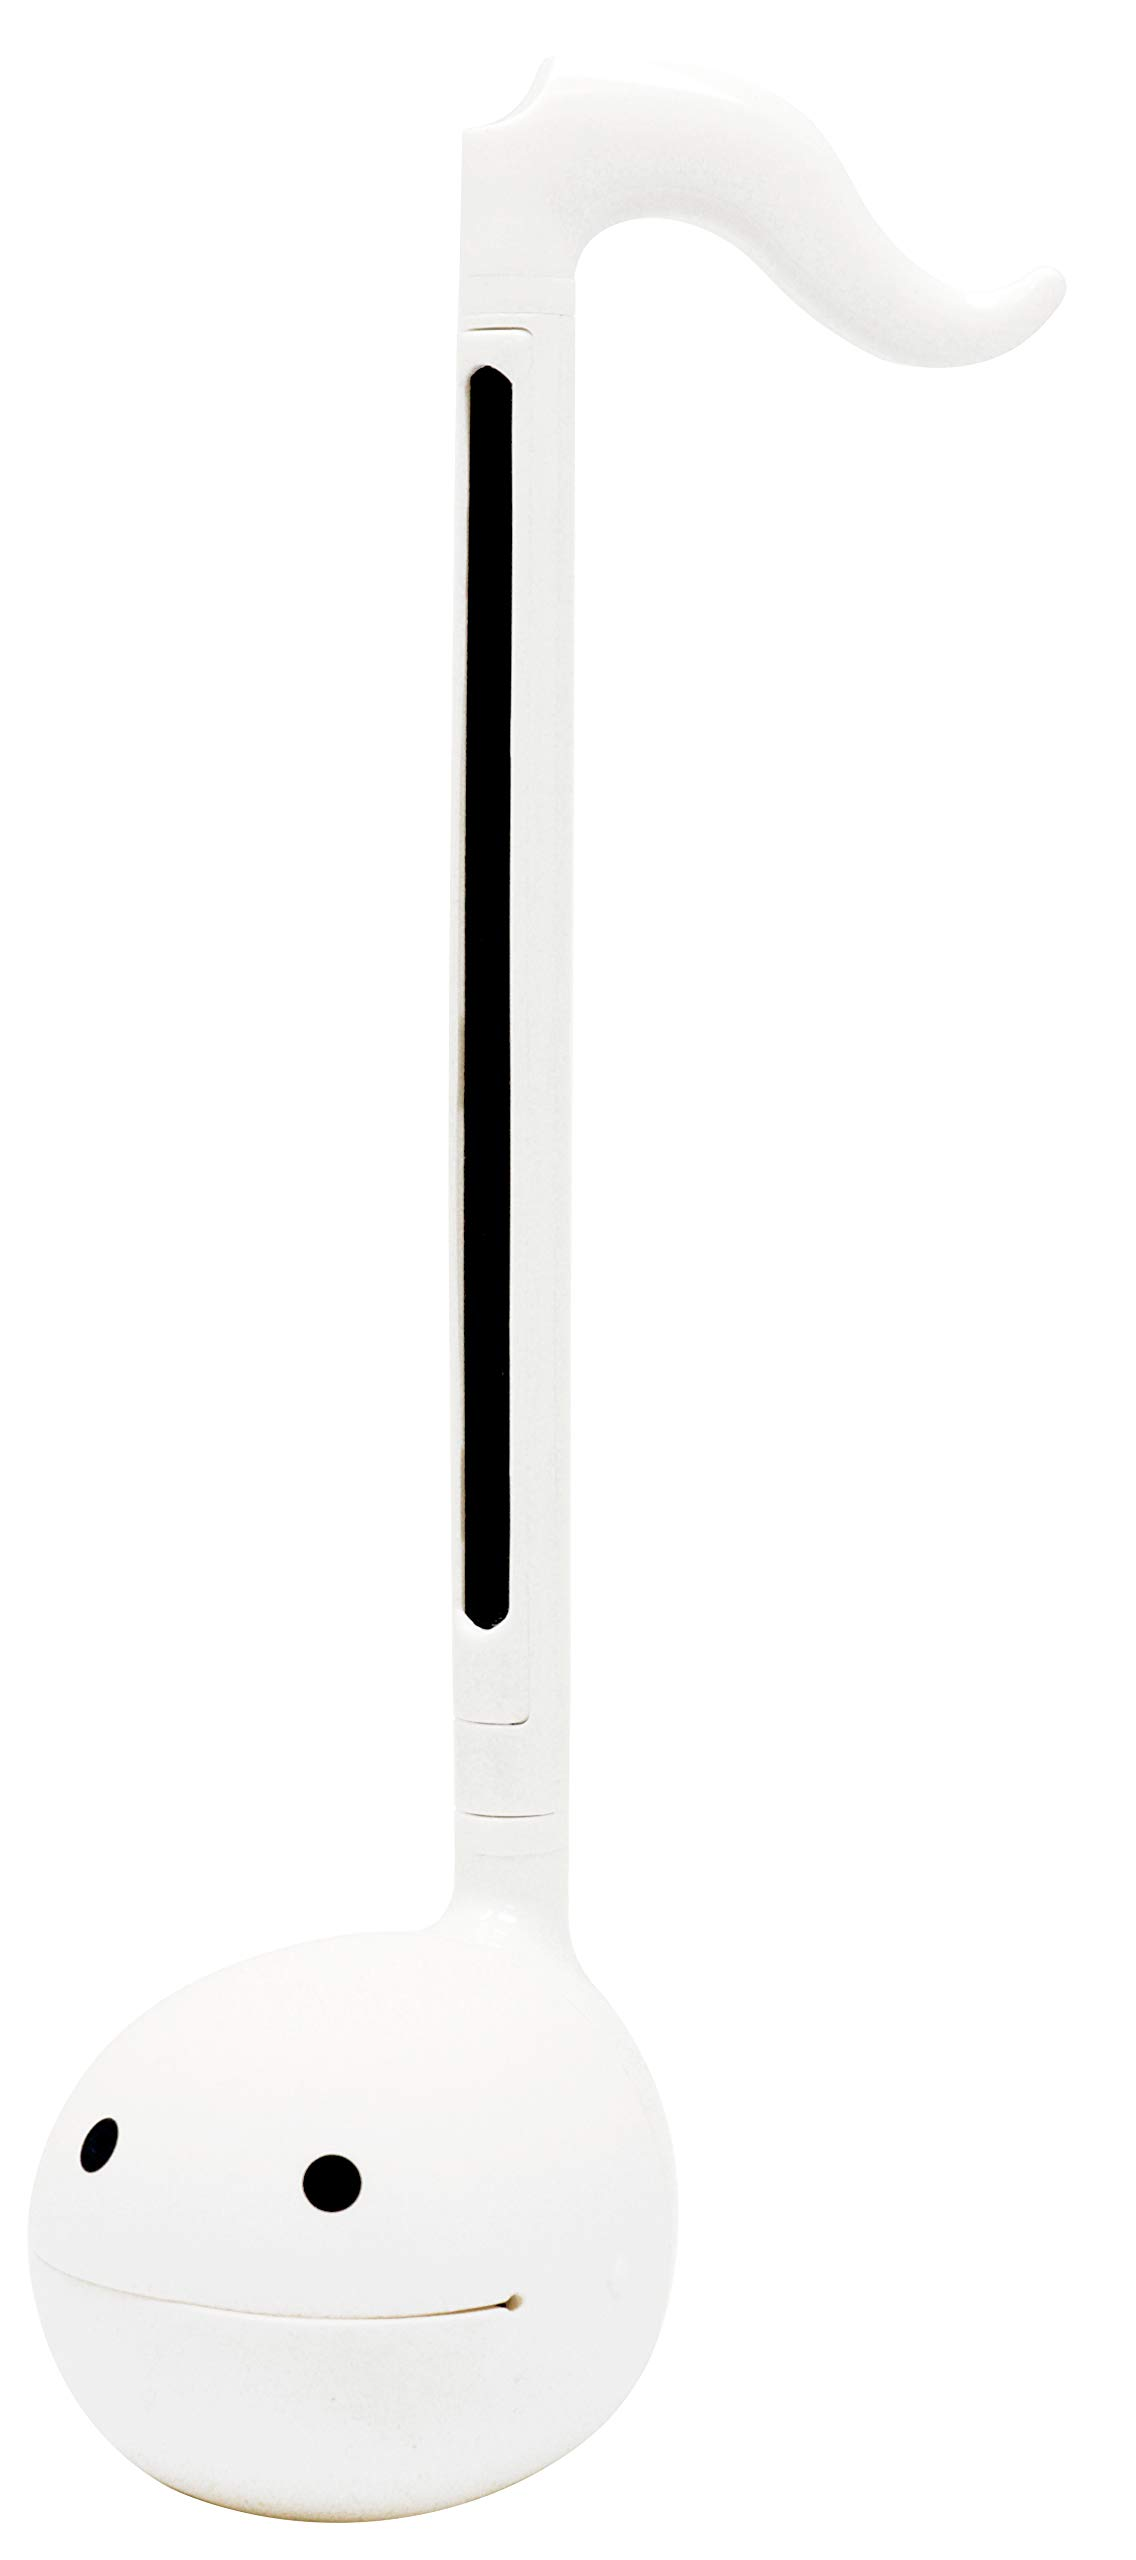 Otamatone [Japanese Edition] Japanese Electronic Musical Instrument Synthesizer by Cube / Maywa Denki, White by Otamatone